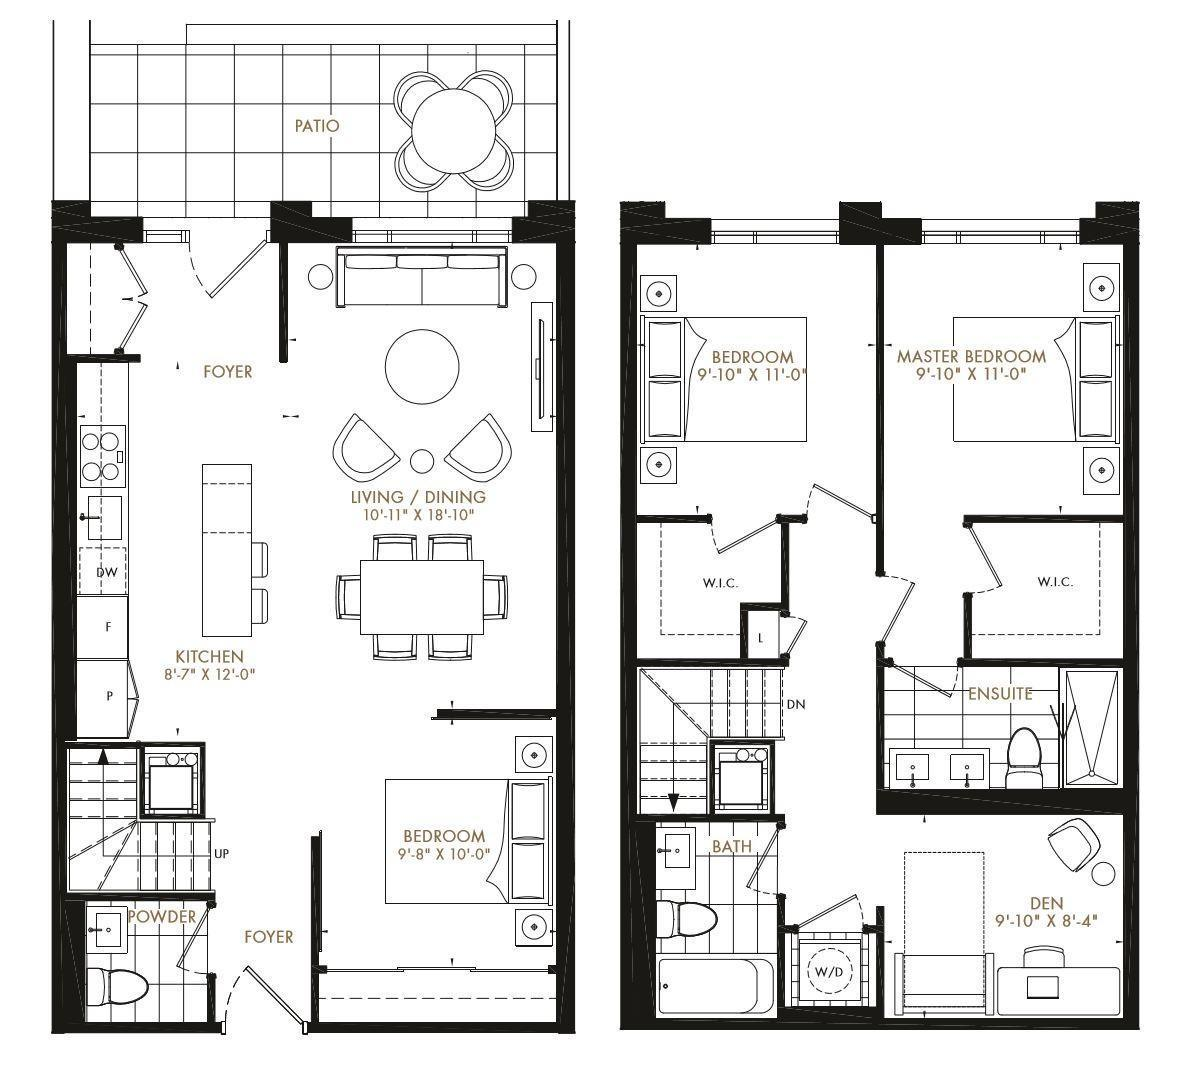 townhome floorplan